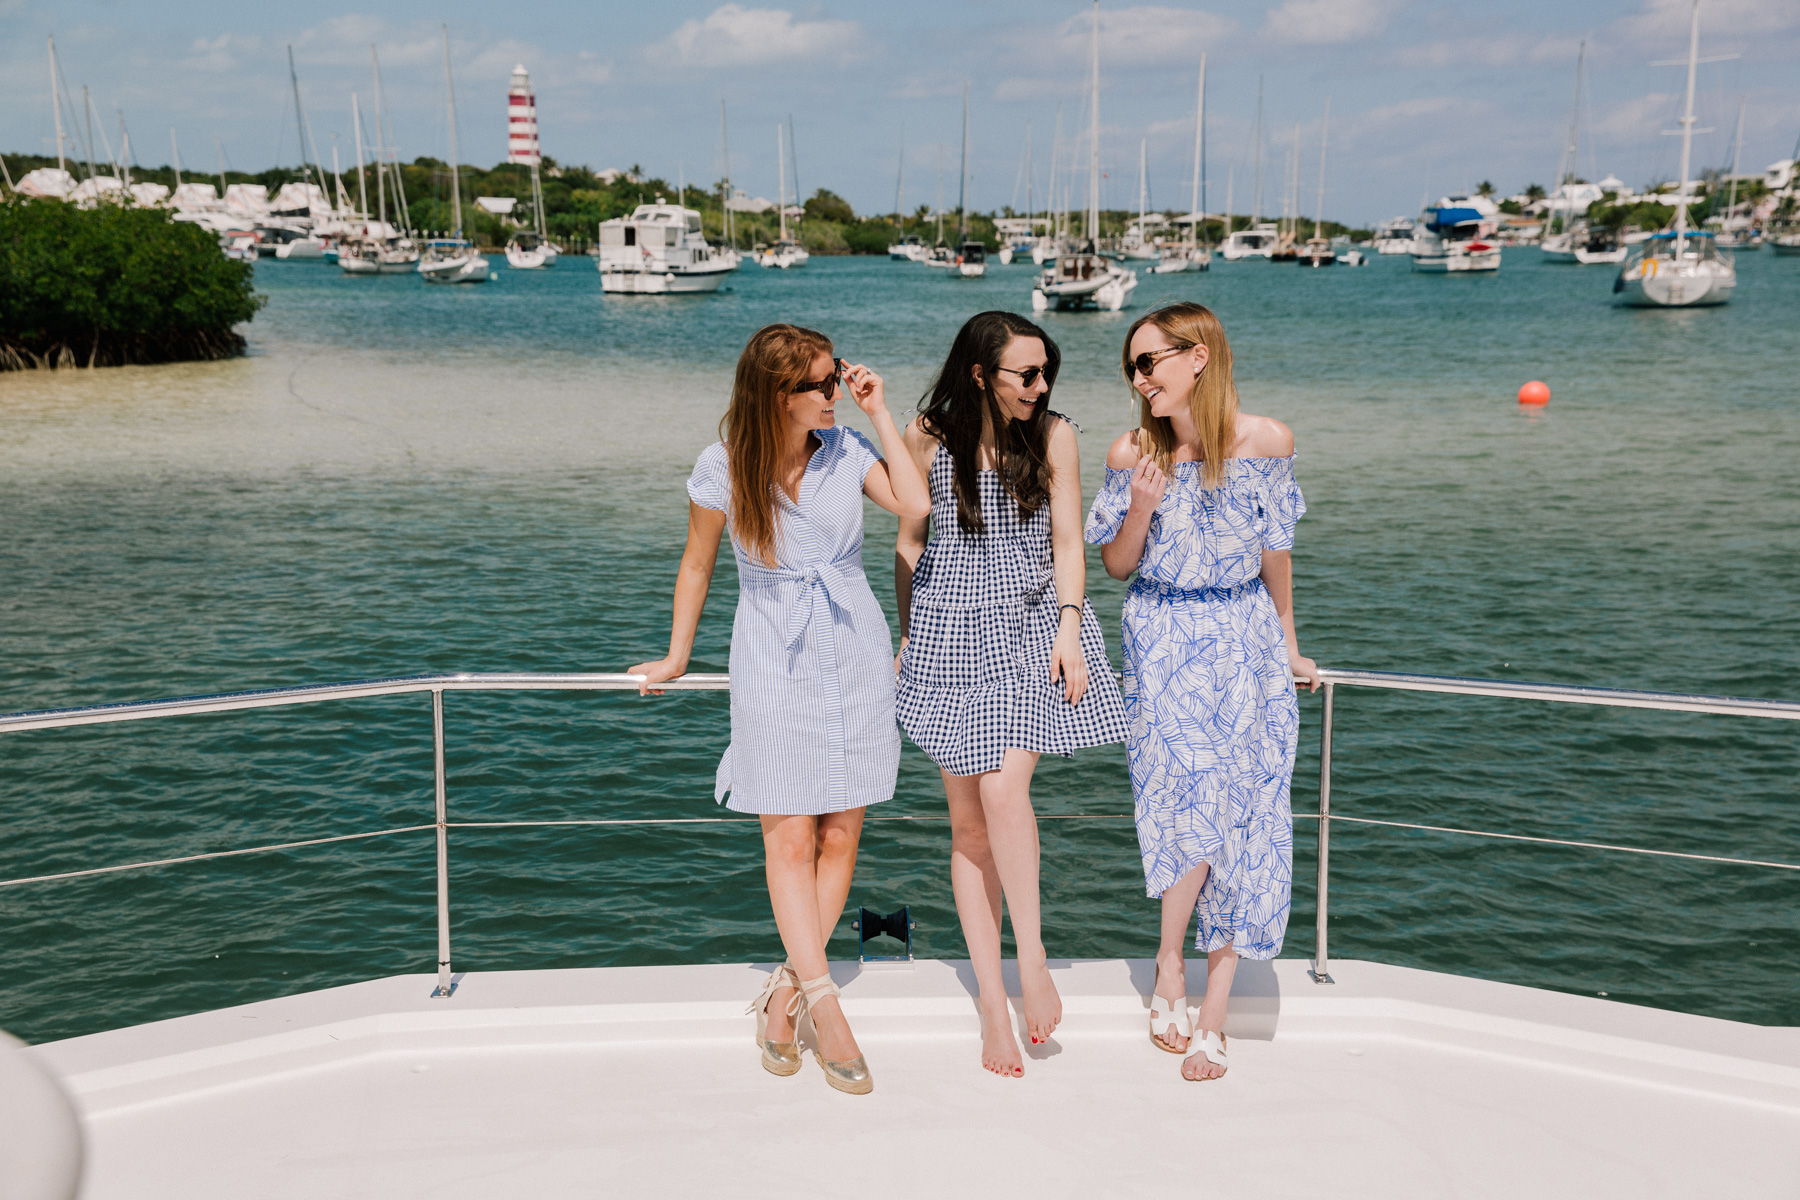 Kelly and her friends in Hope Town Harbor